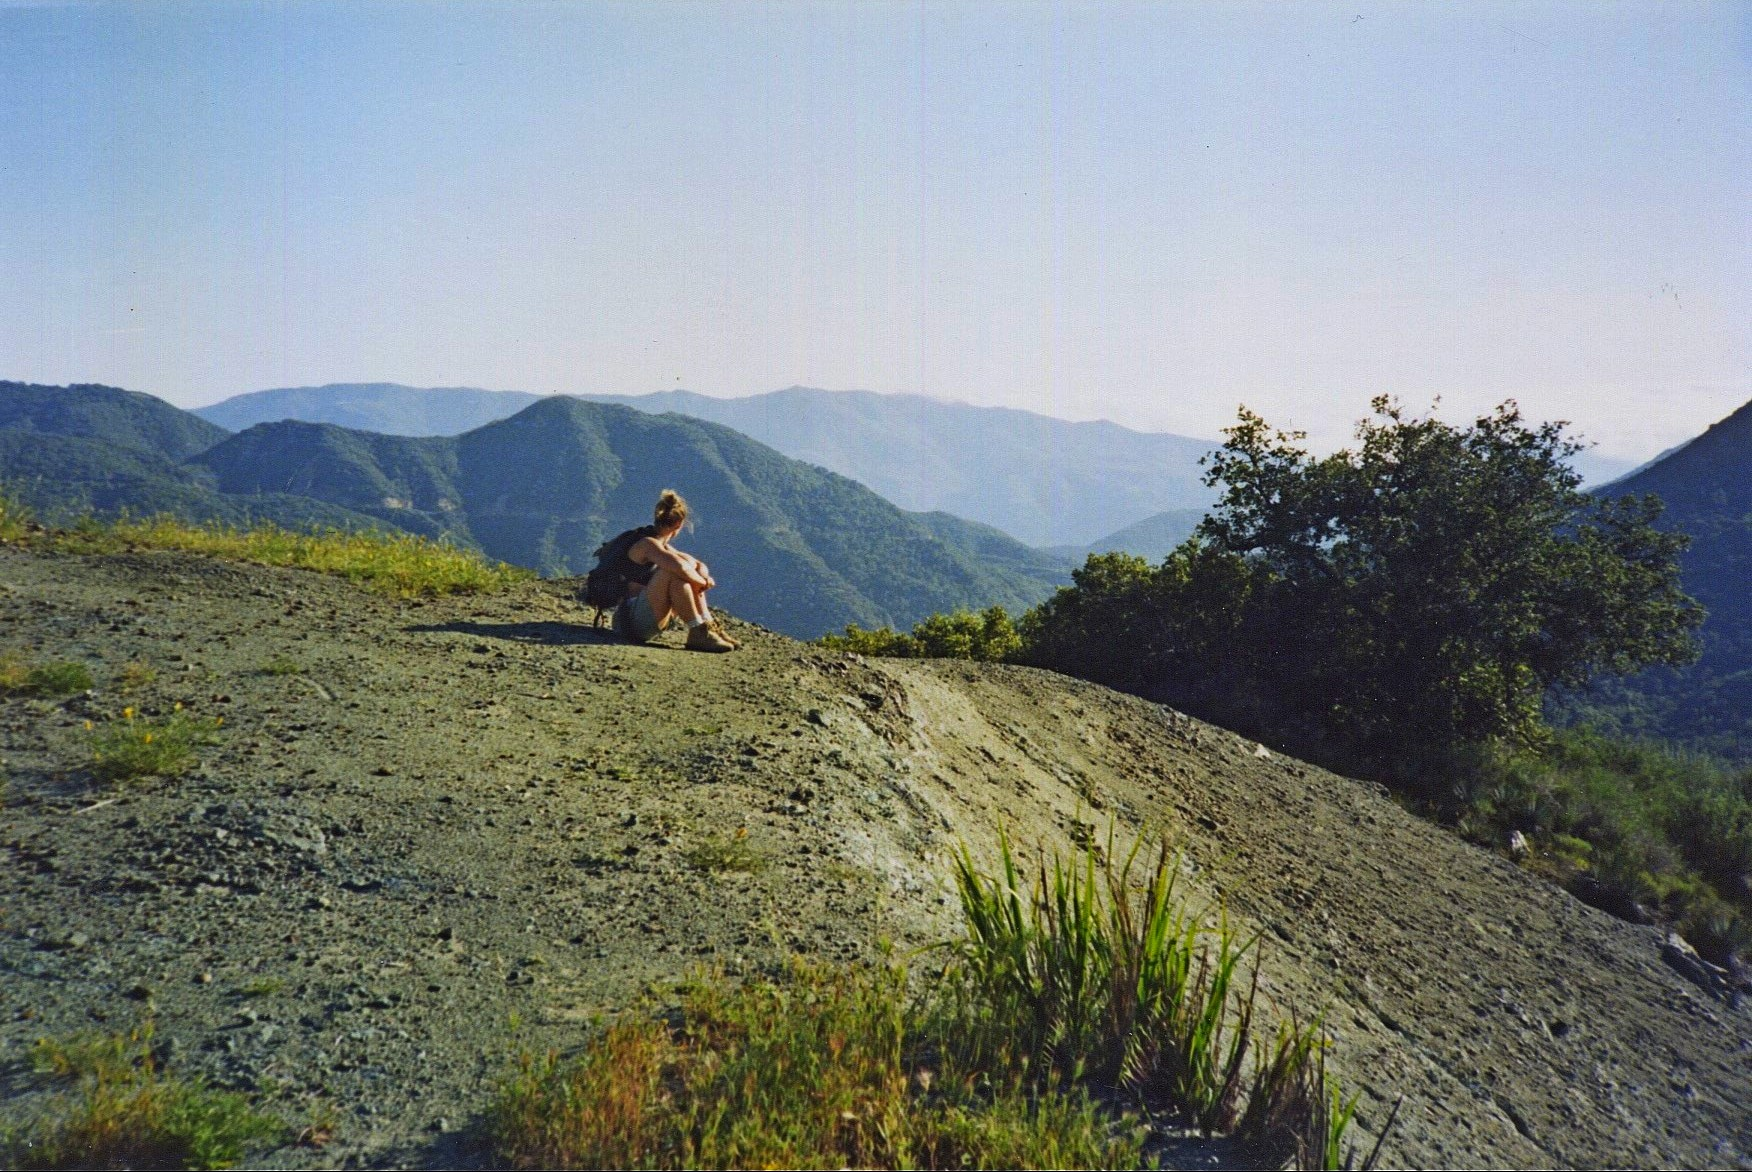 Upper Oso – Santa Cruz Trail 1998